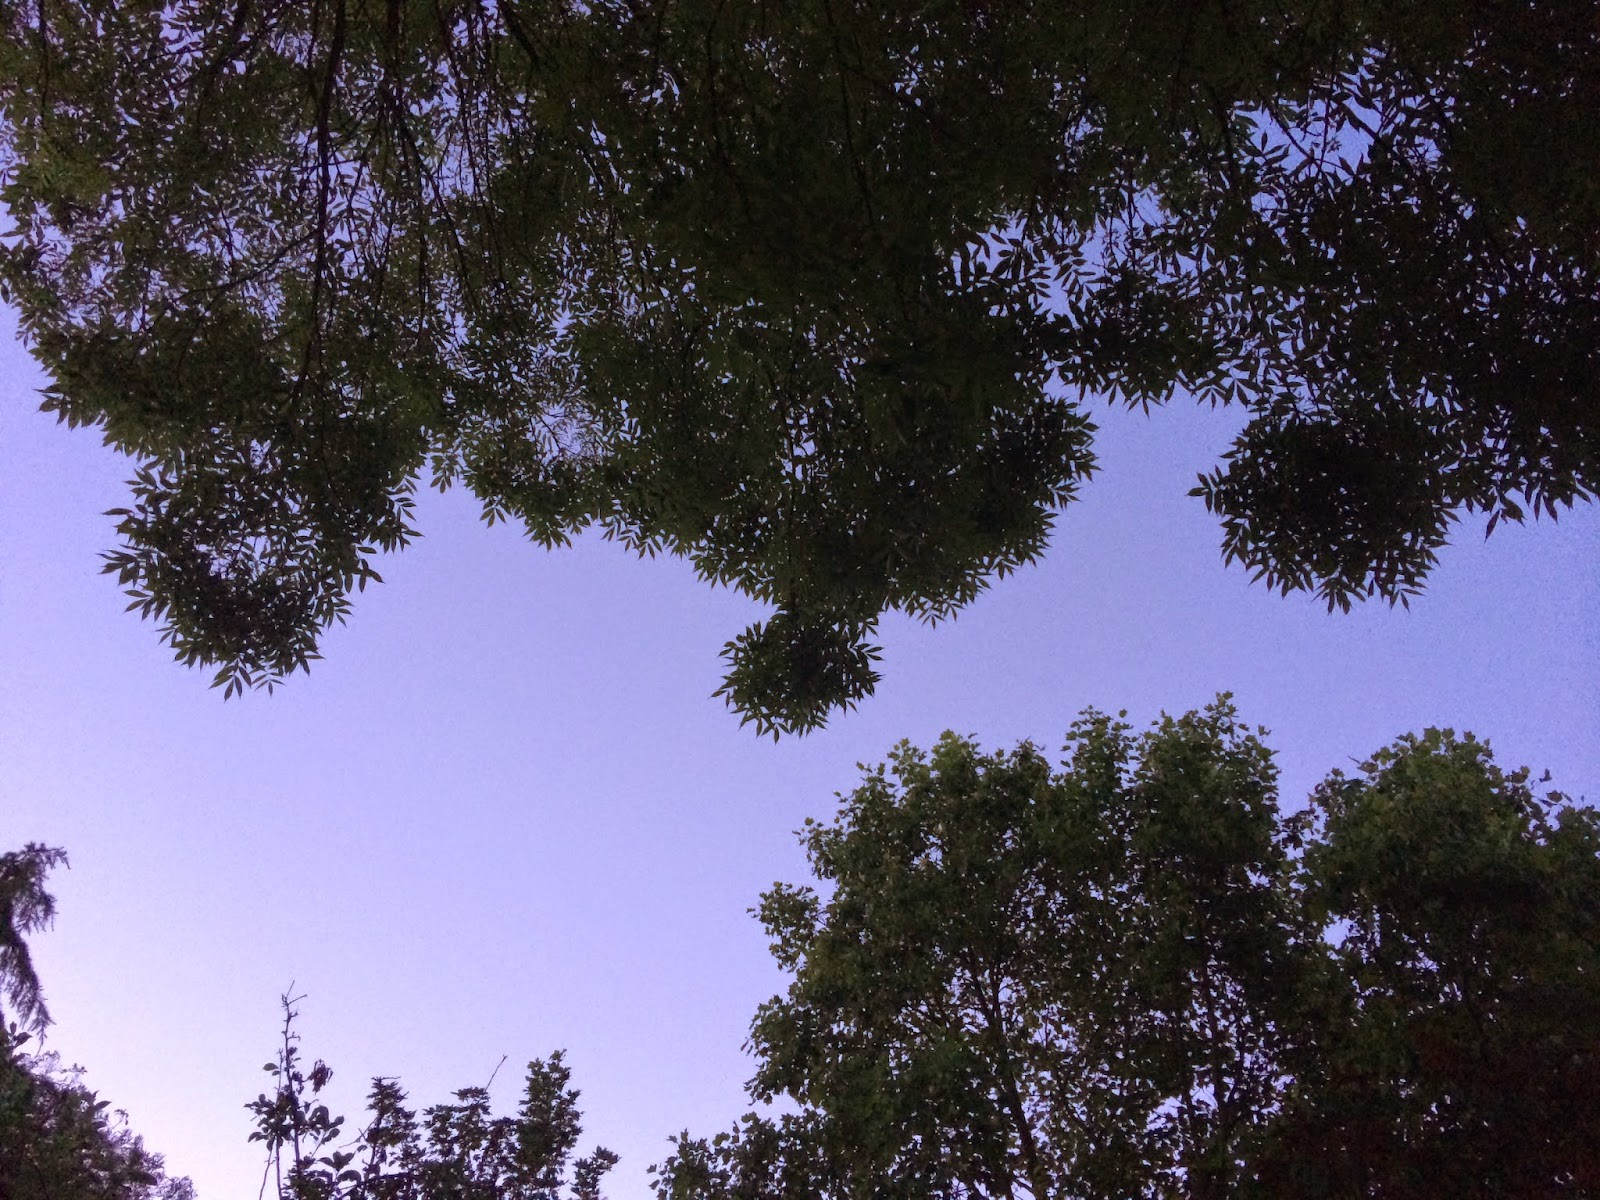 trees and sky